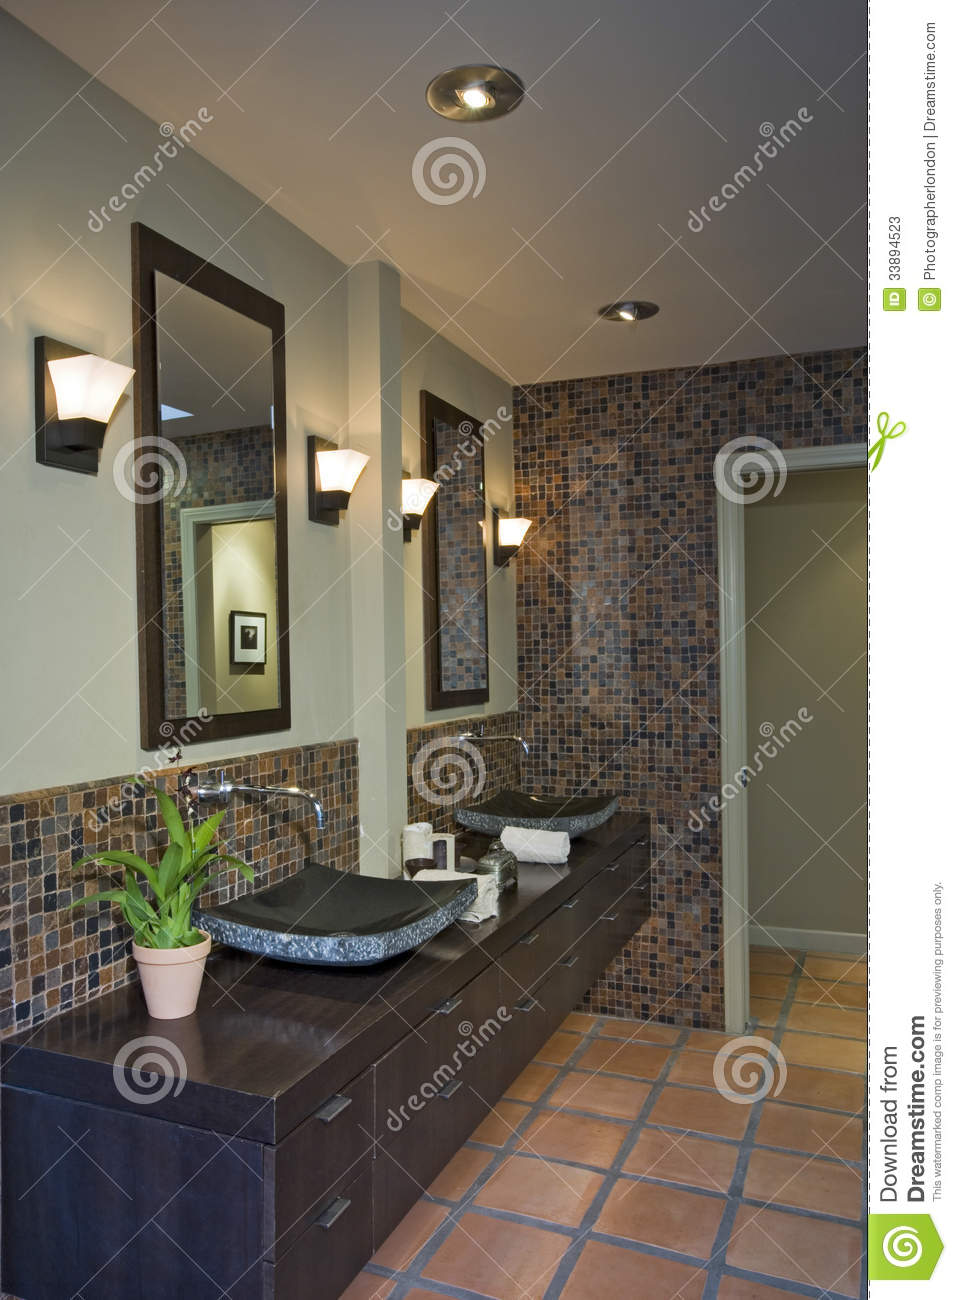 Lamps By Mirrors Over Sinks In Bathroom Stock Image